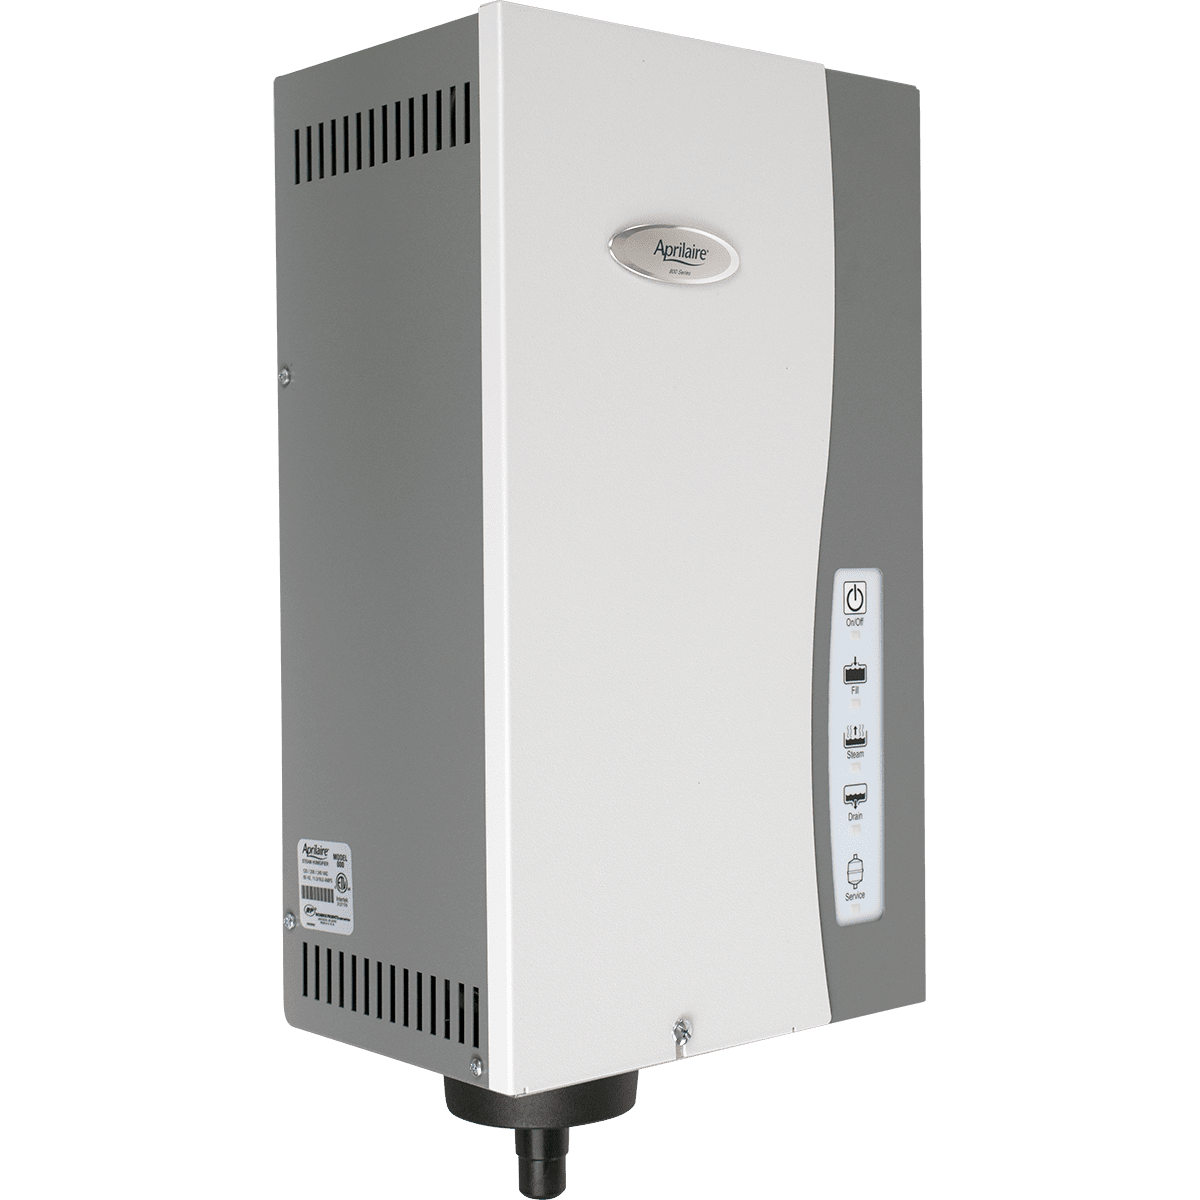 Aprilaire Model 800 Whole House Steam Humidifier Sylvane Electrical Wiring In The Home 220 Volt Problem Loud Bang Volts